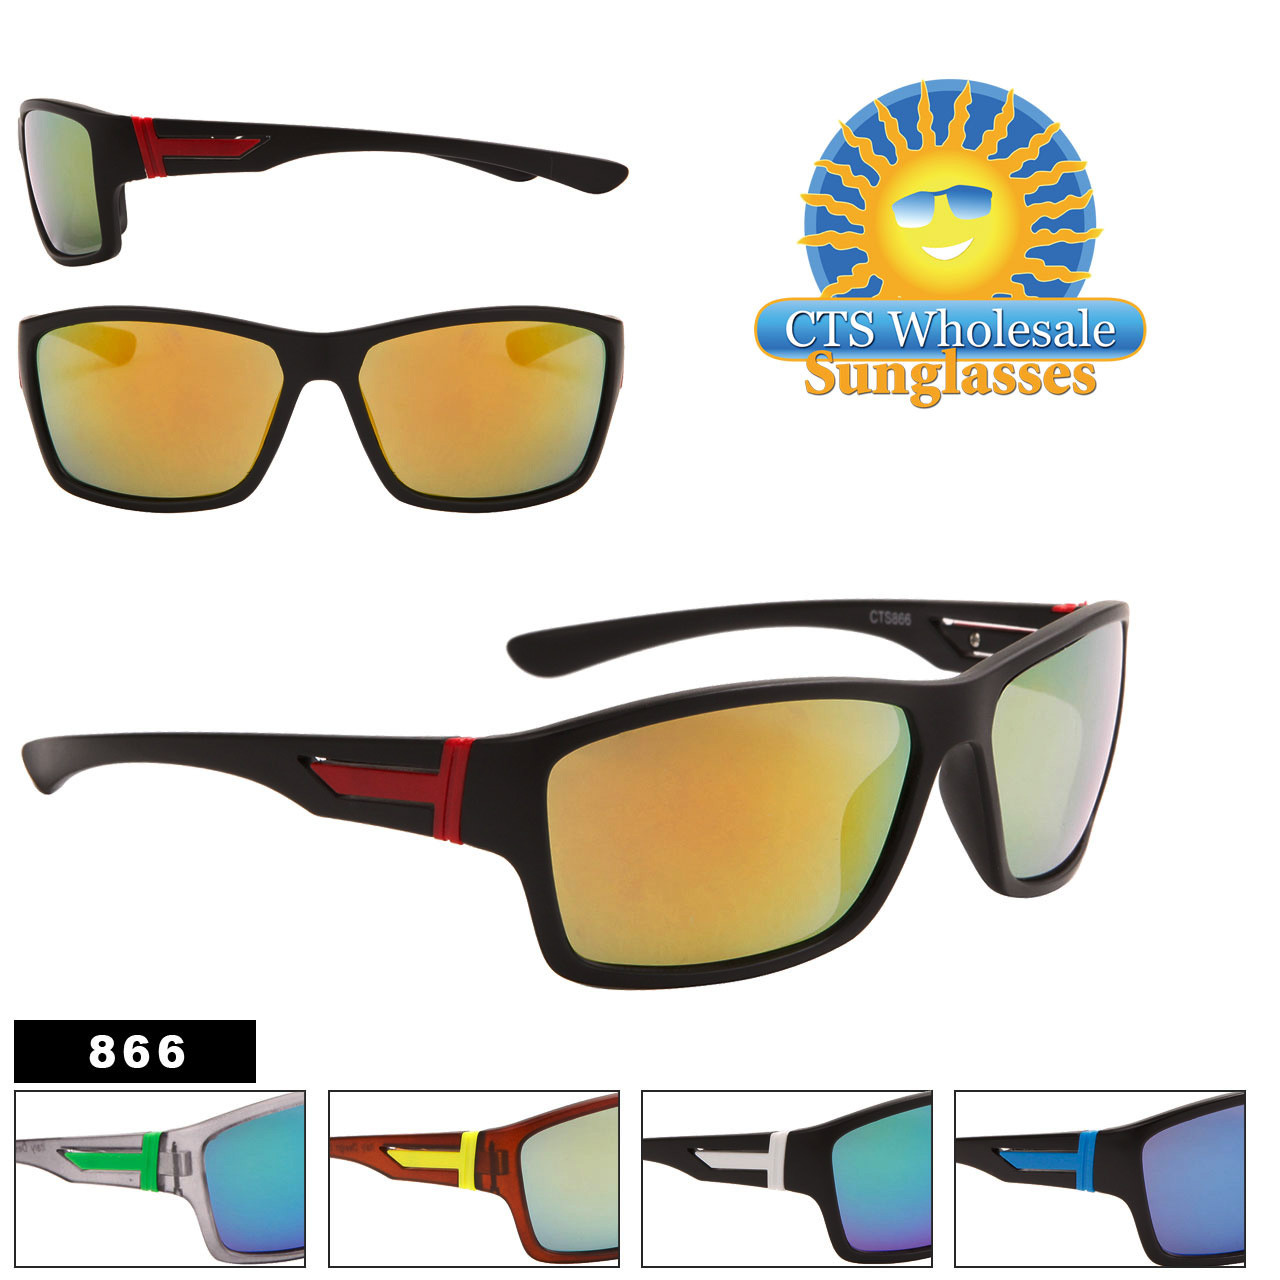 Men's Mirrored Sunglasses by the Dozen - Style #866 (Assorted Colors) (12 pcs.)